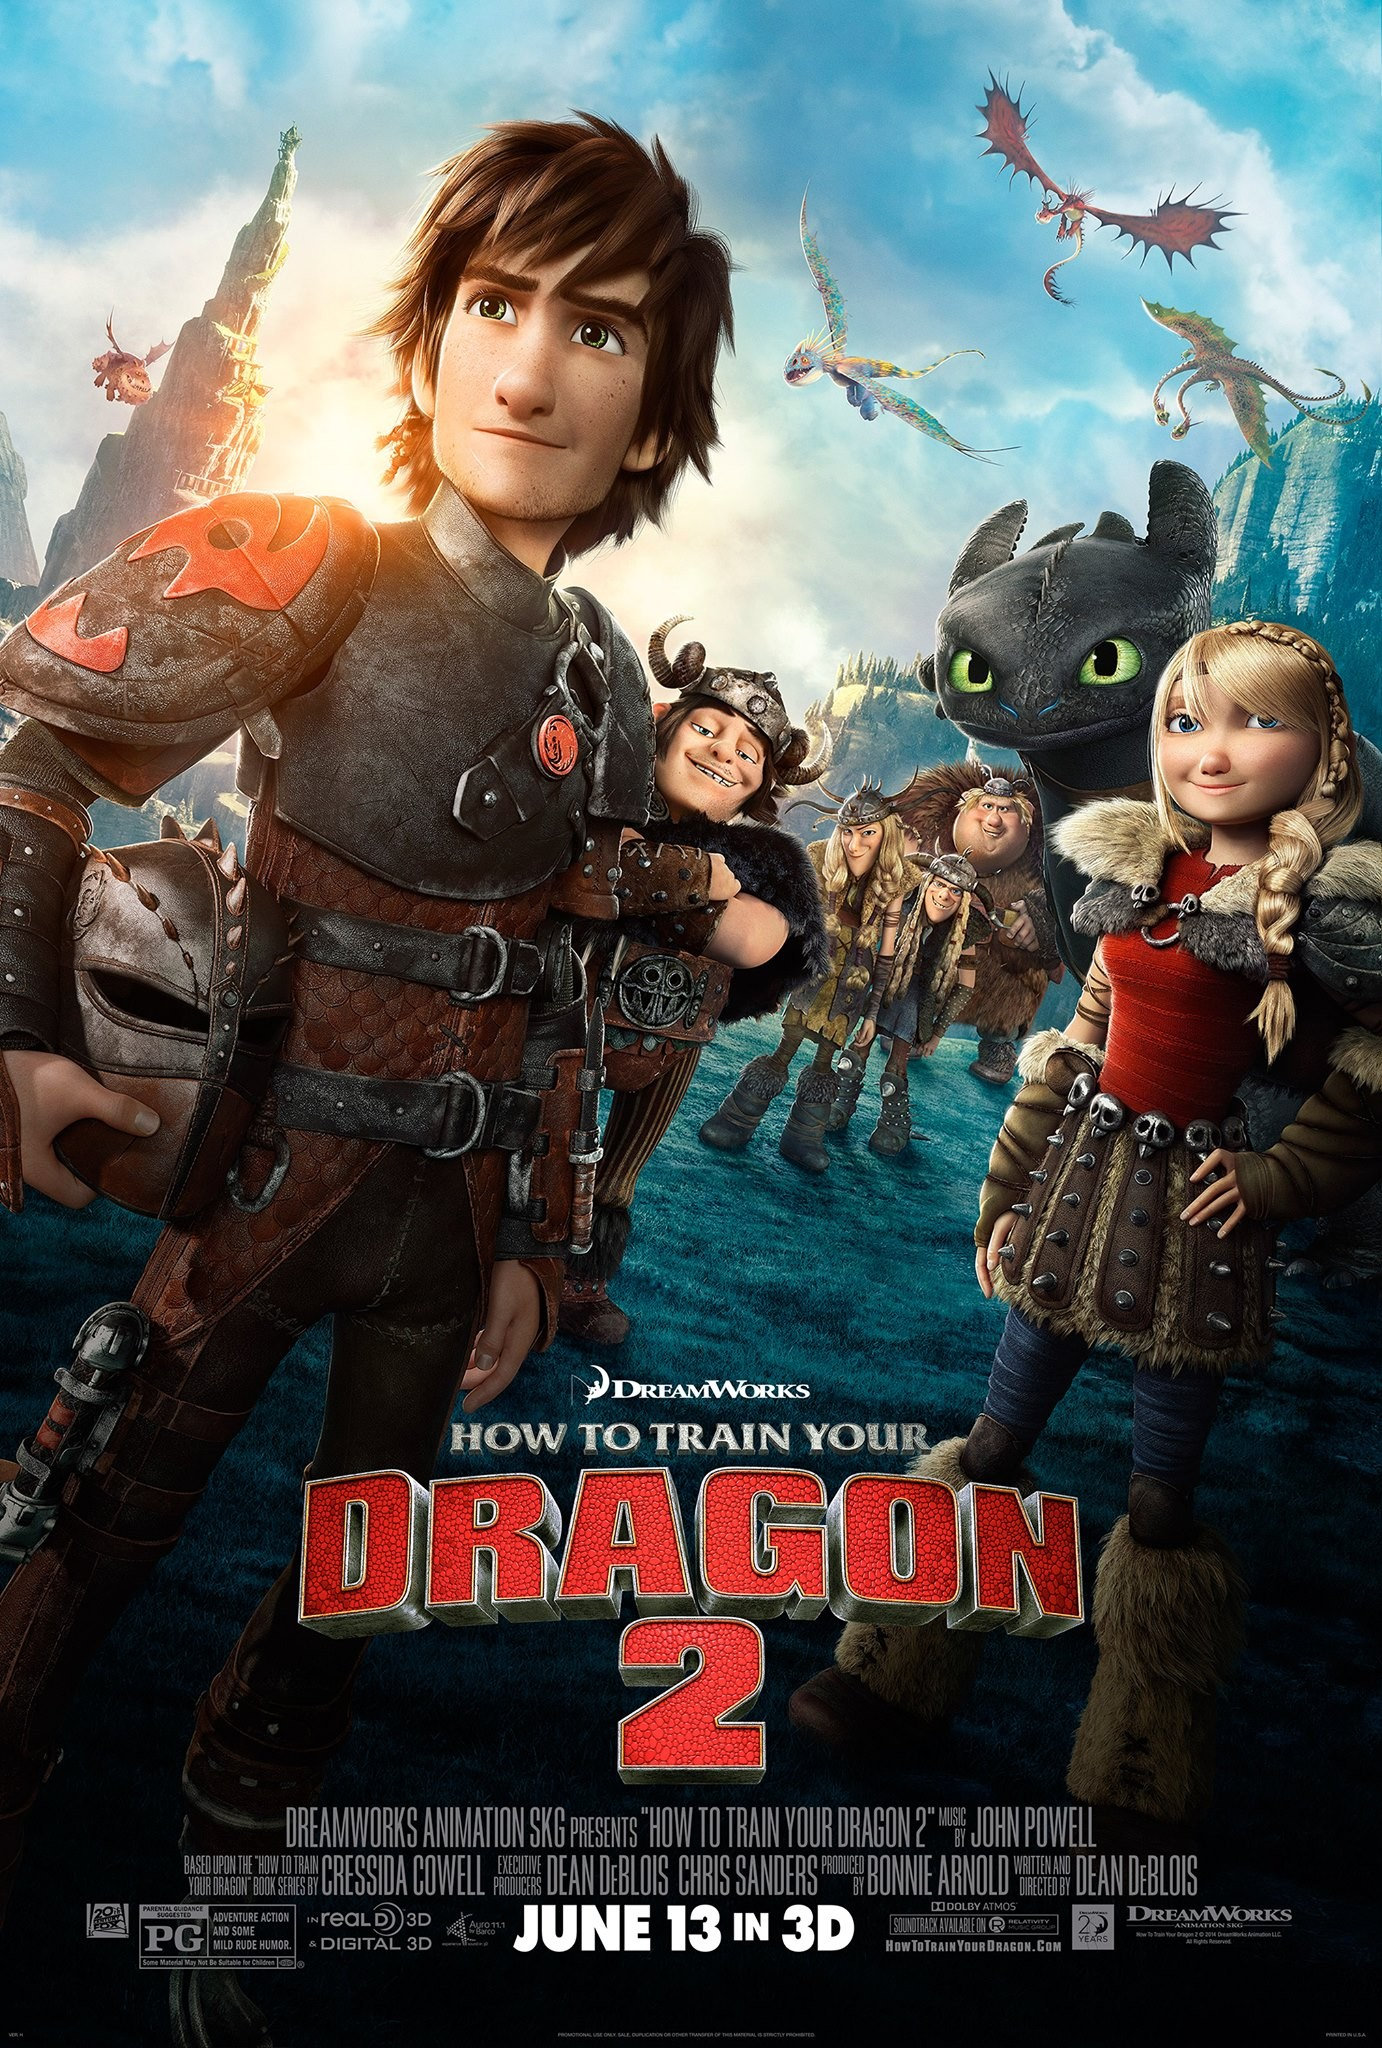 How to Train Your Dragon 2-Official Poster Banner PROMO XXLG-10ABRIL2014